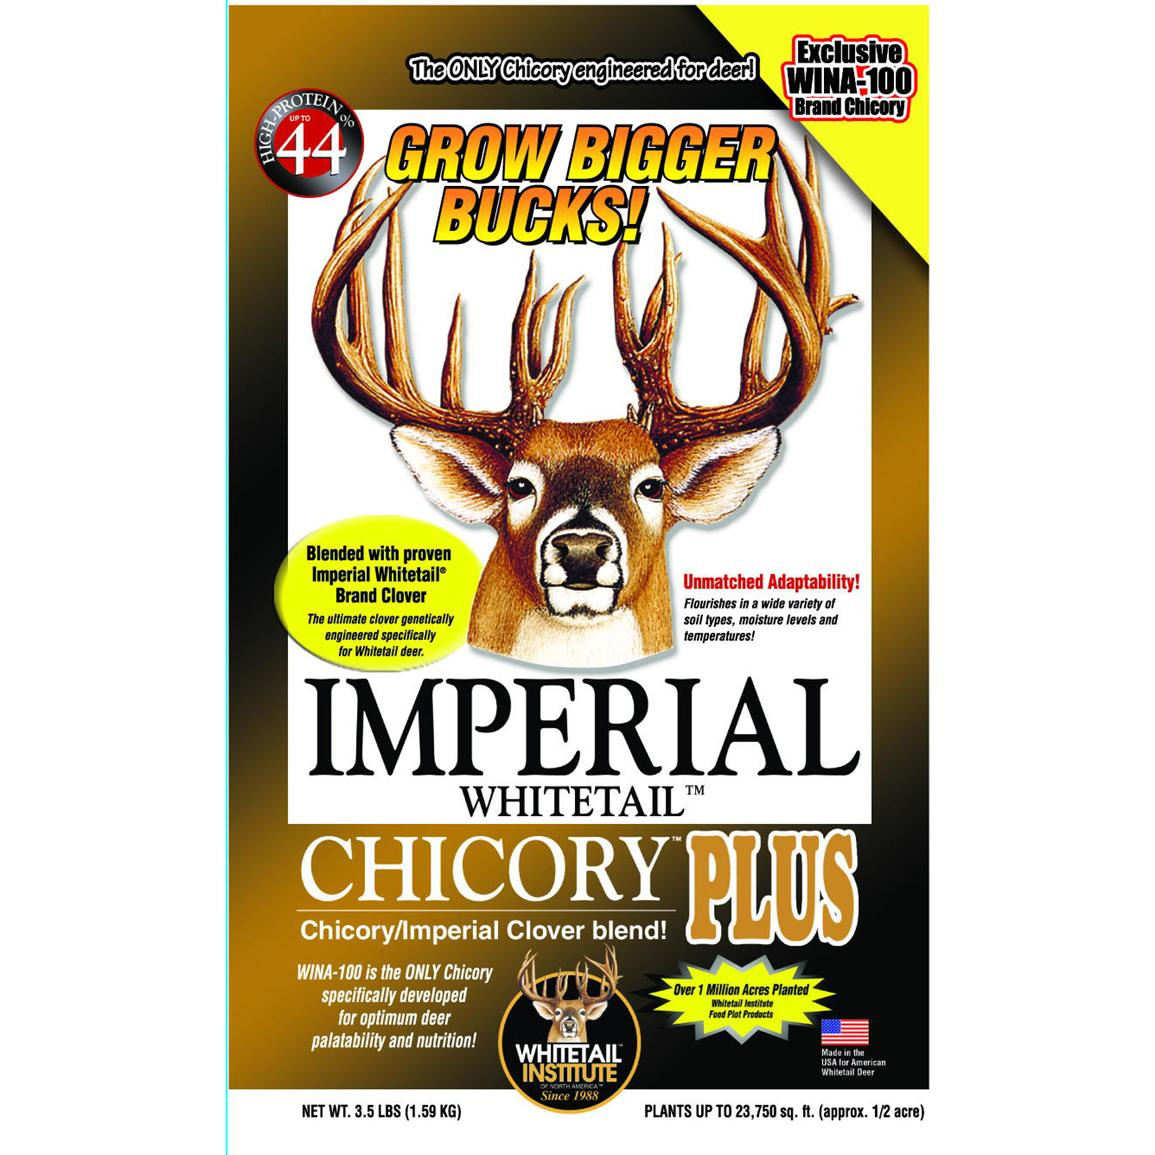 Whitetail Institute® Imperial Whitetail Chicory Plus